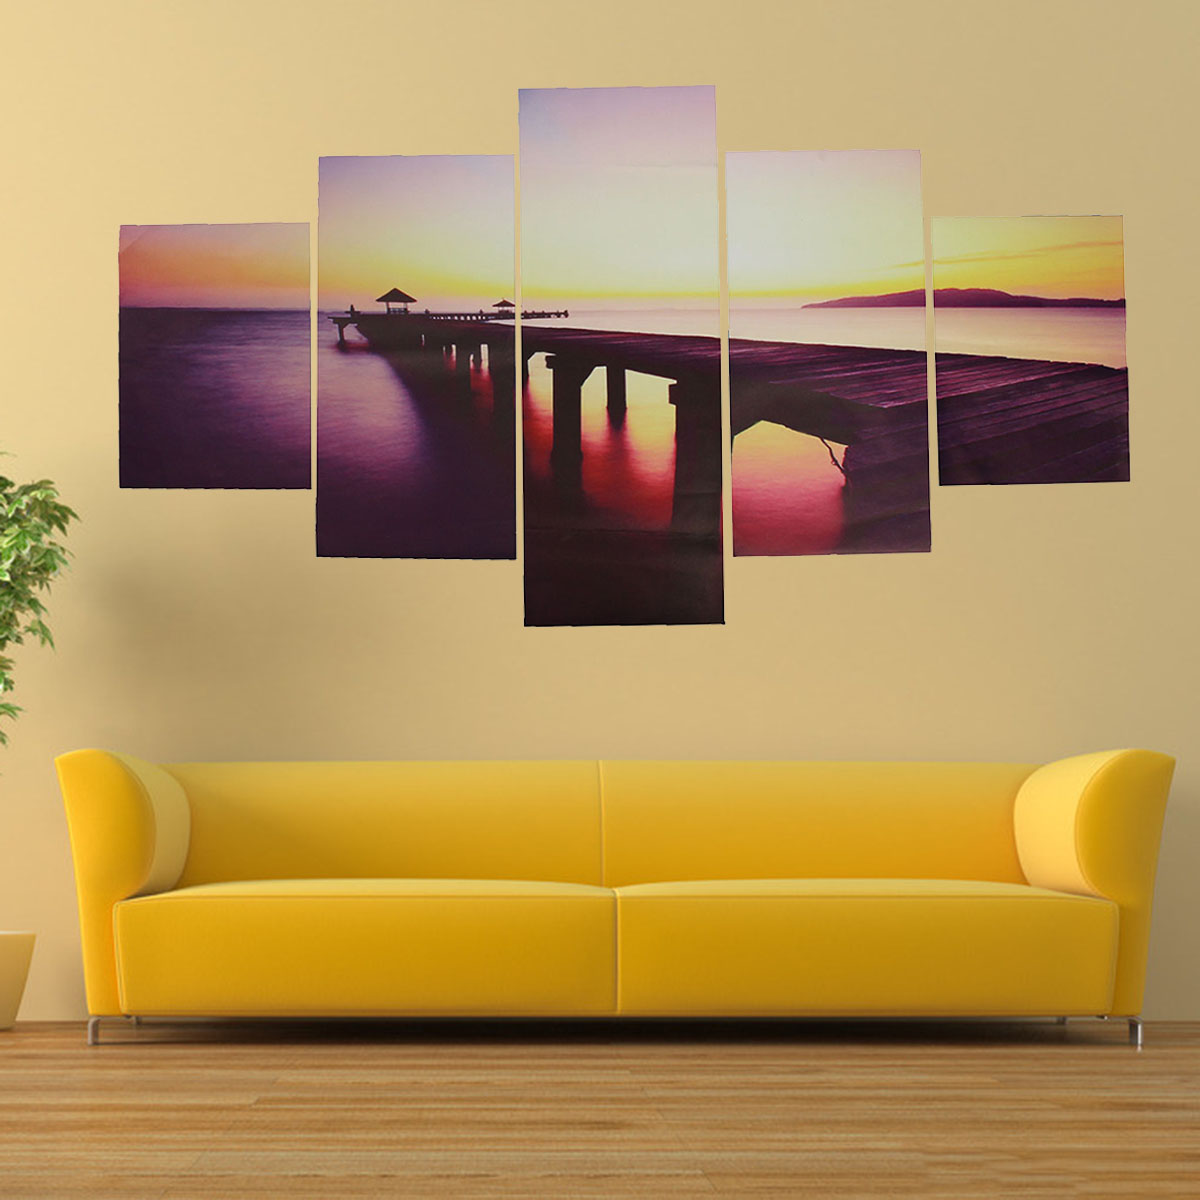 Breathtaking Wall Art at Home Goods Pictures Decors – Dievoon